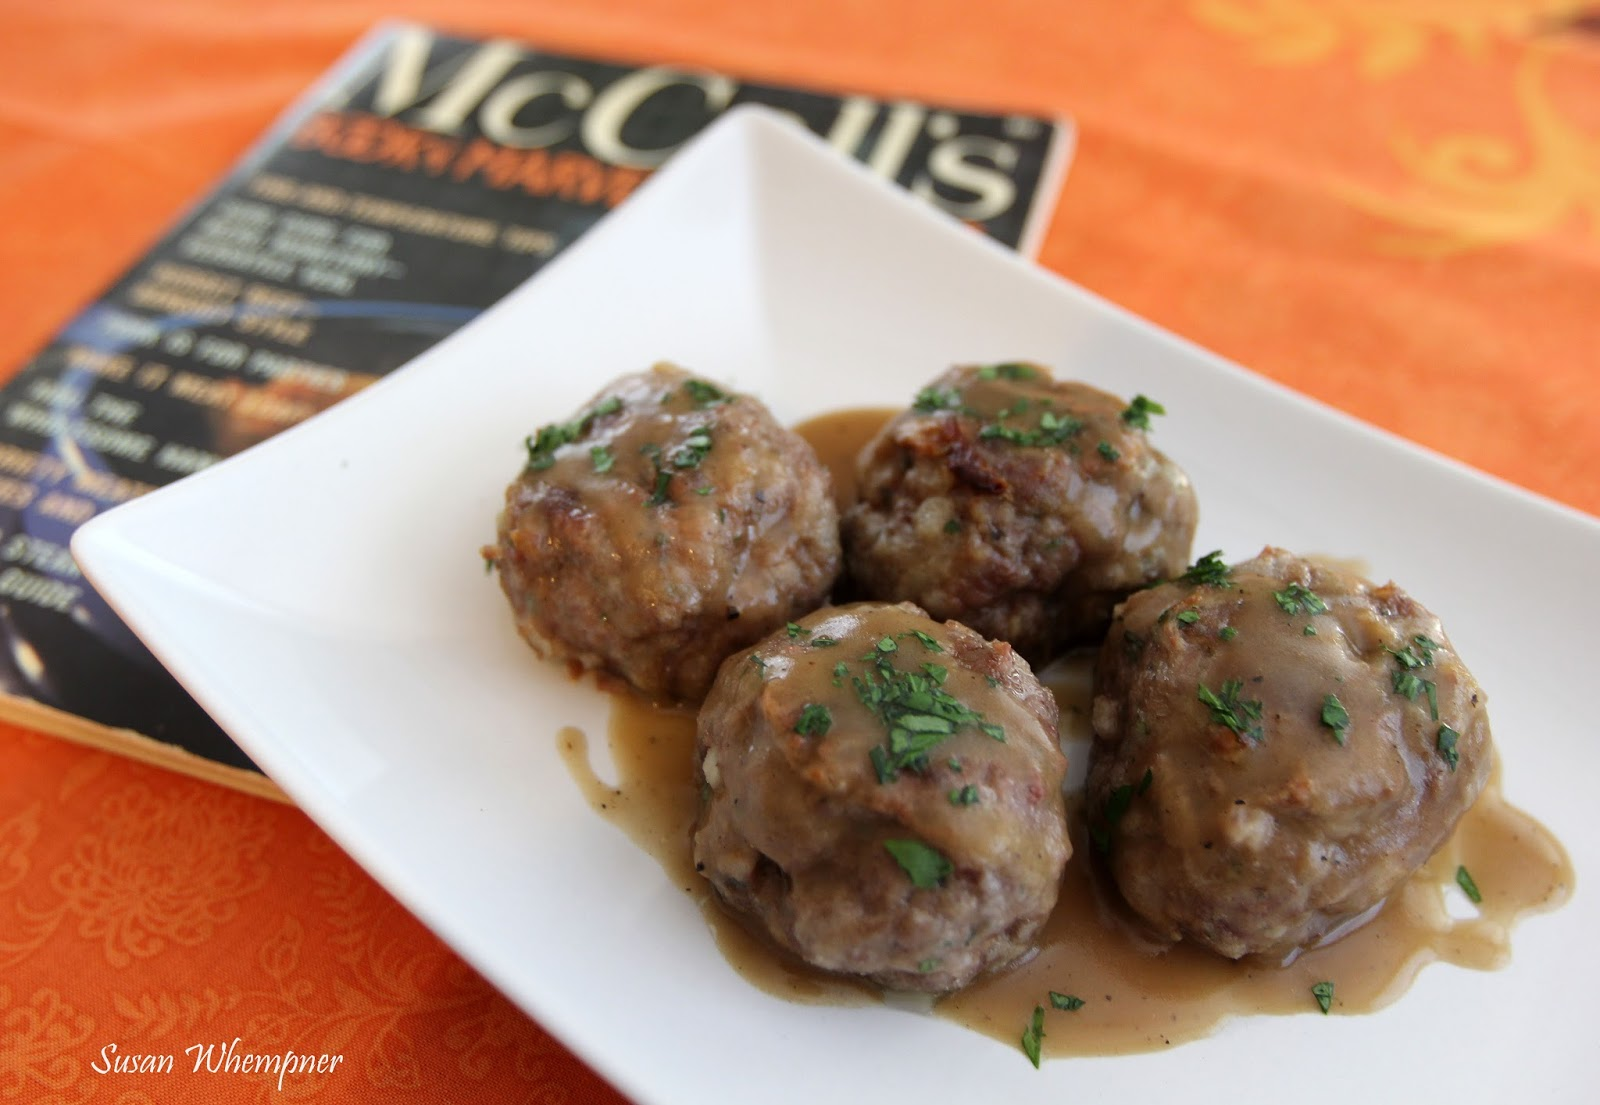 Communication on this topic: How to Make Danish Meatballs, how-to-make-danish-meatballs/